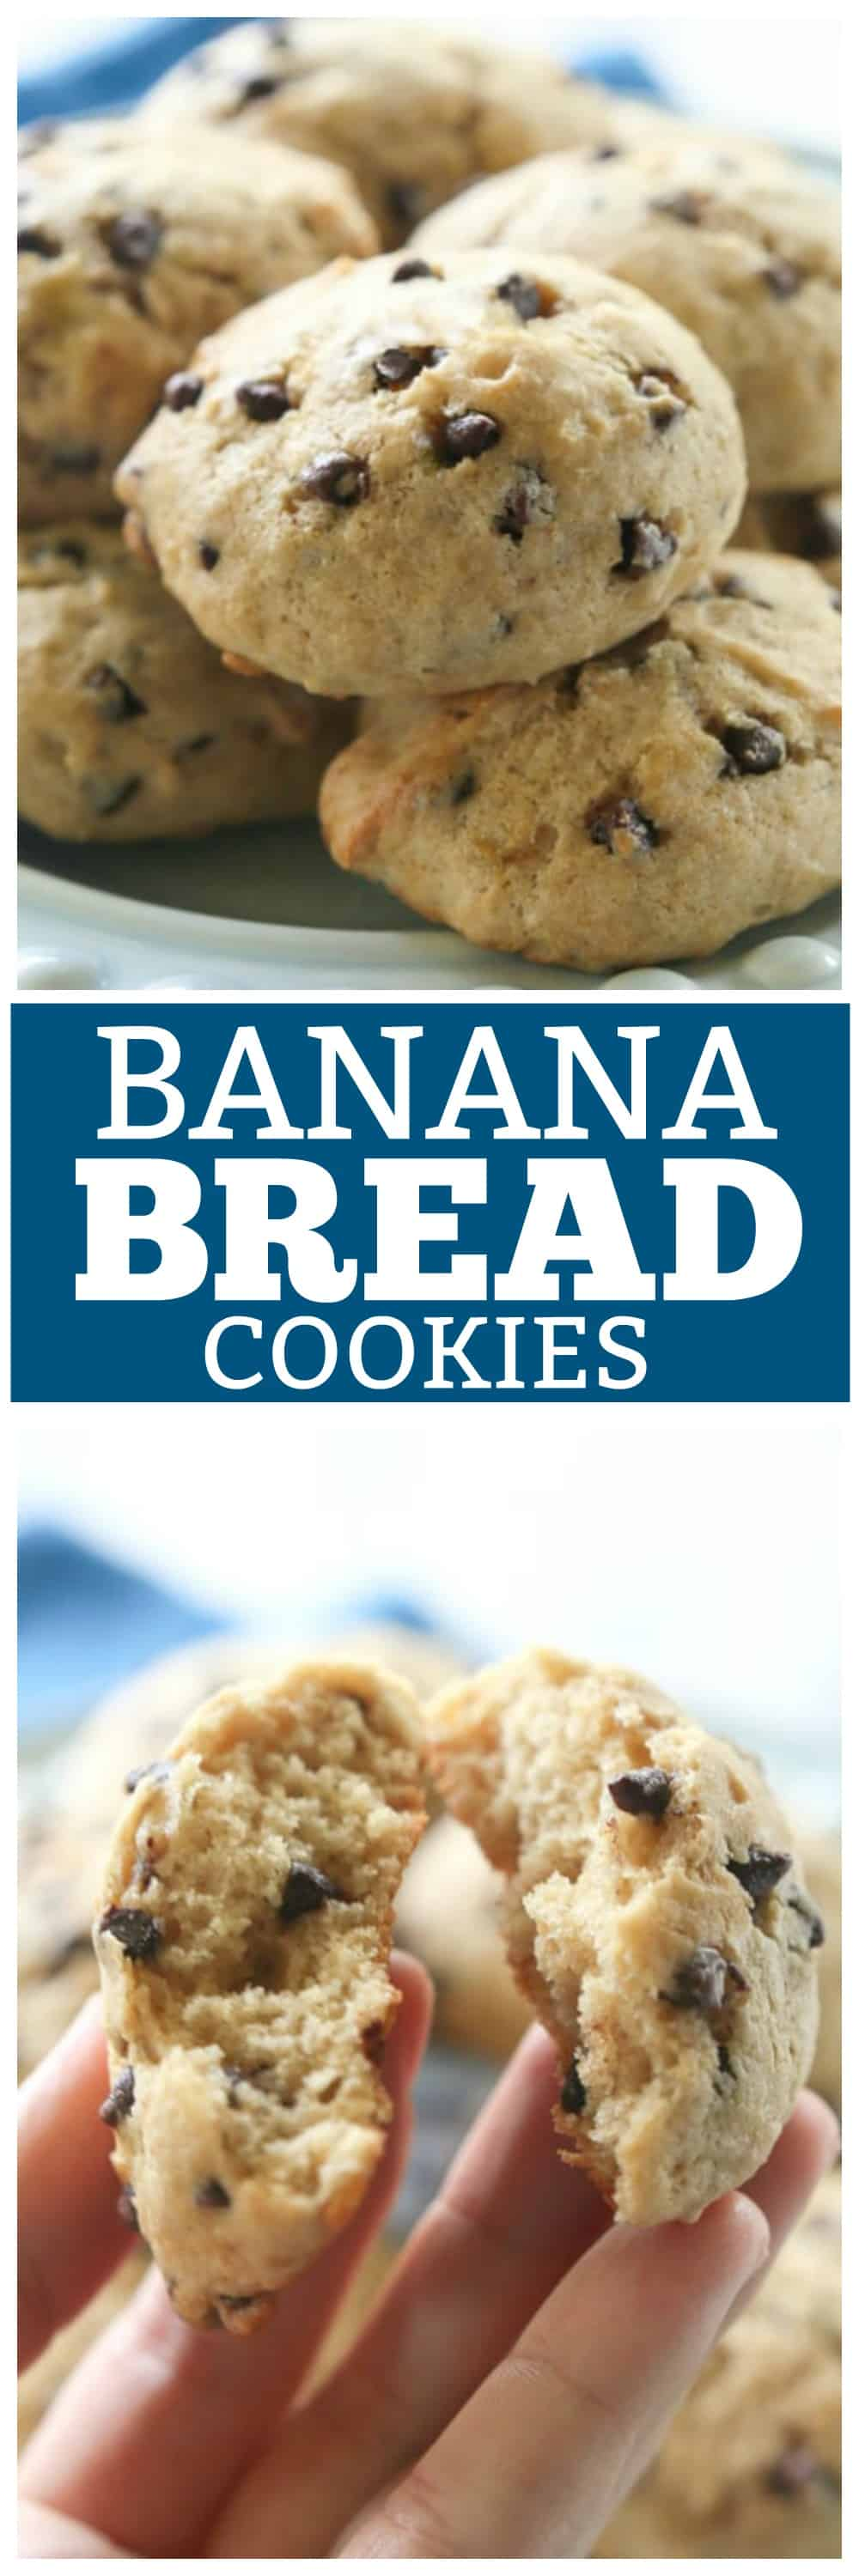 Banana Bread Cookies Recipe - The Girl Who Ate Everything